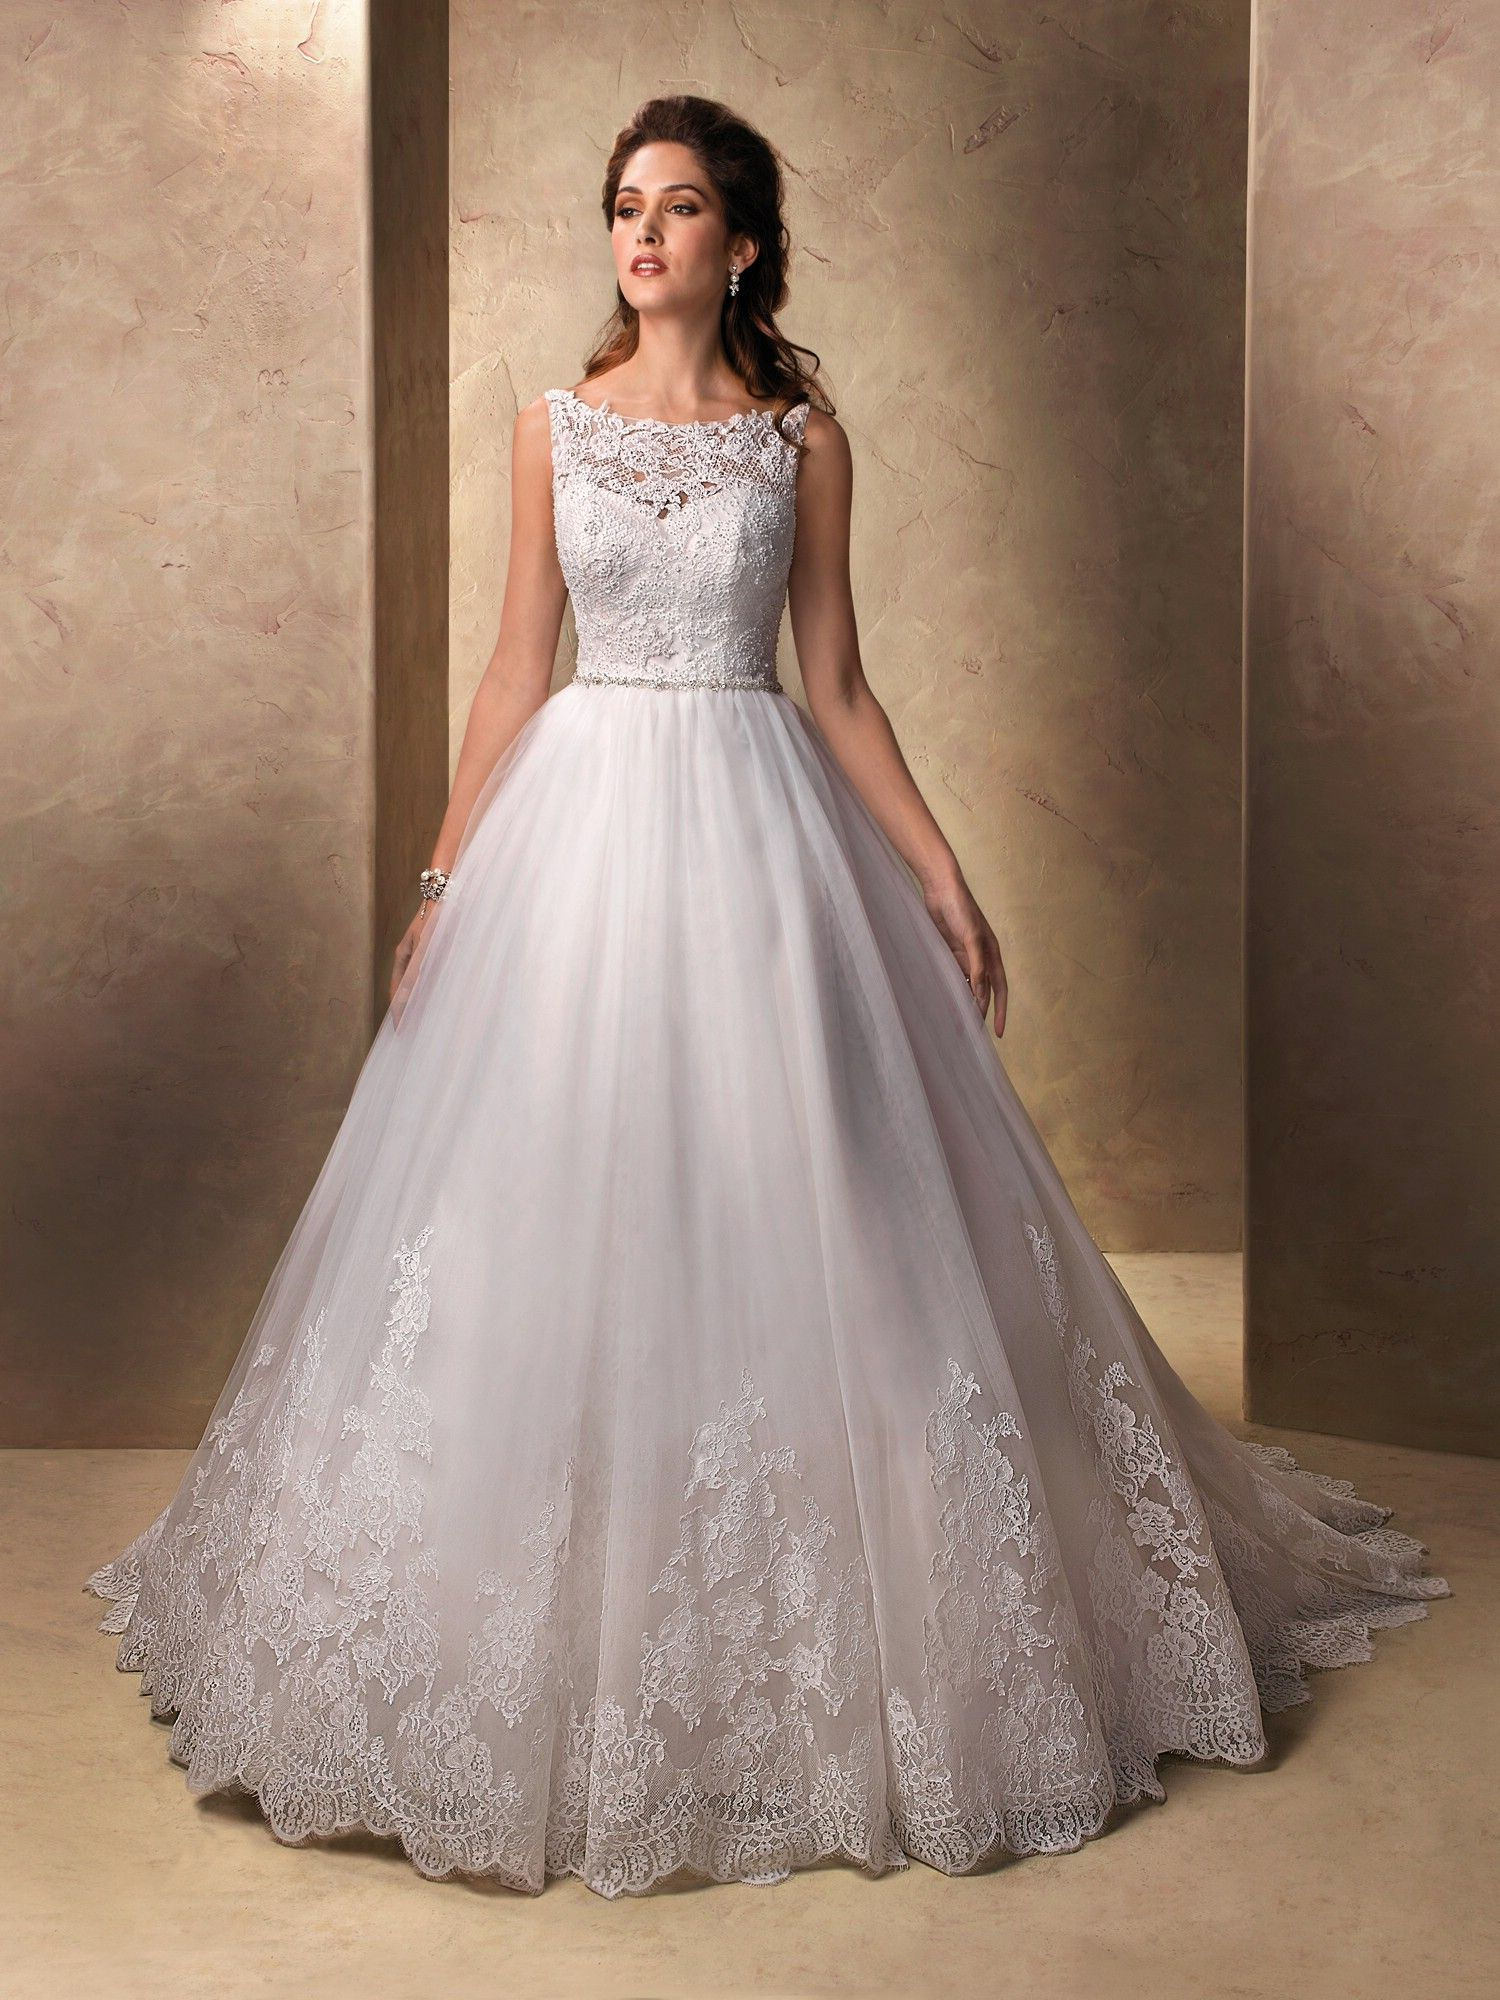 78  images about Wedding Dresses on Pinterest - Fractions- My ...